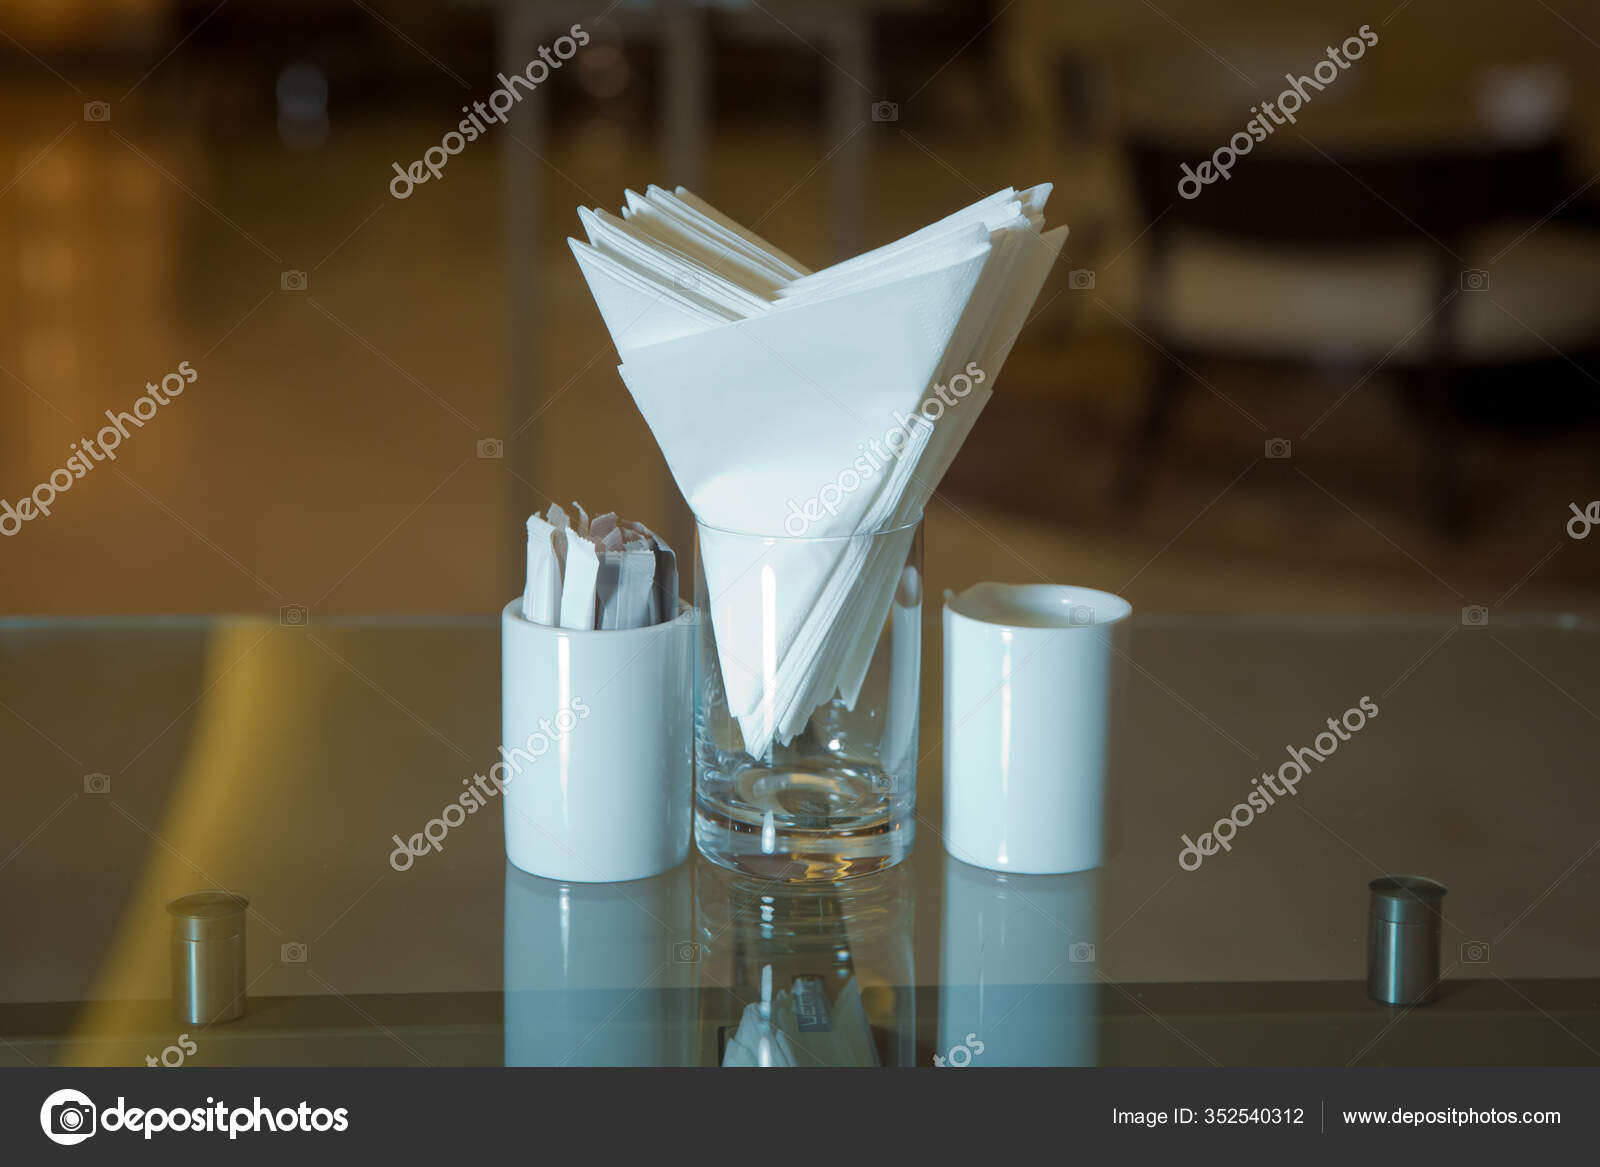 Table Cafe Restaurant White Napkins Metal Napkin Holder Spices Salt Stock Photo C Fotoqraf Tk Mail Ru 352540312